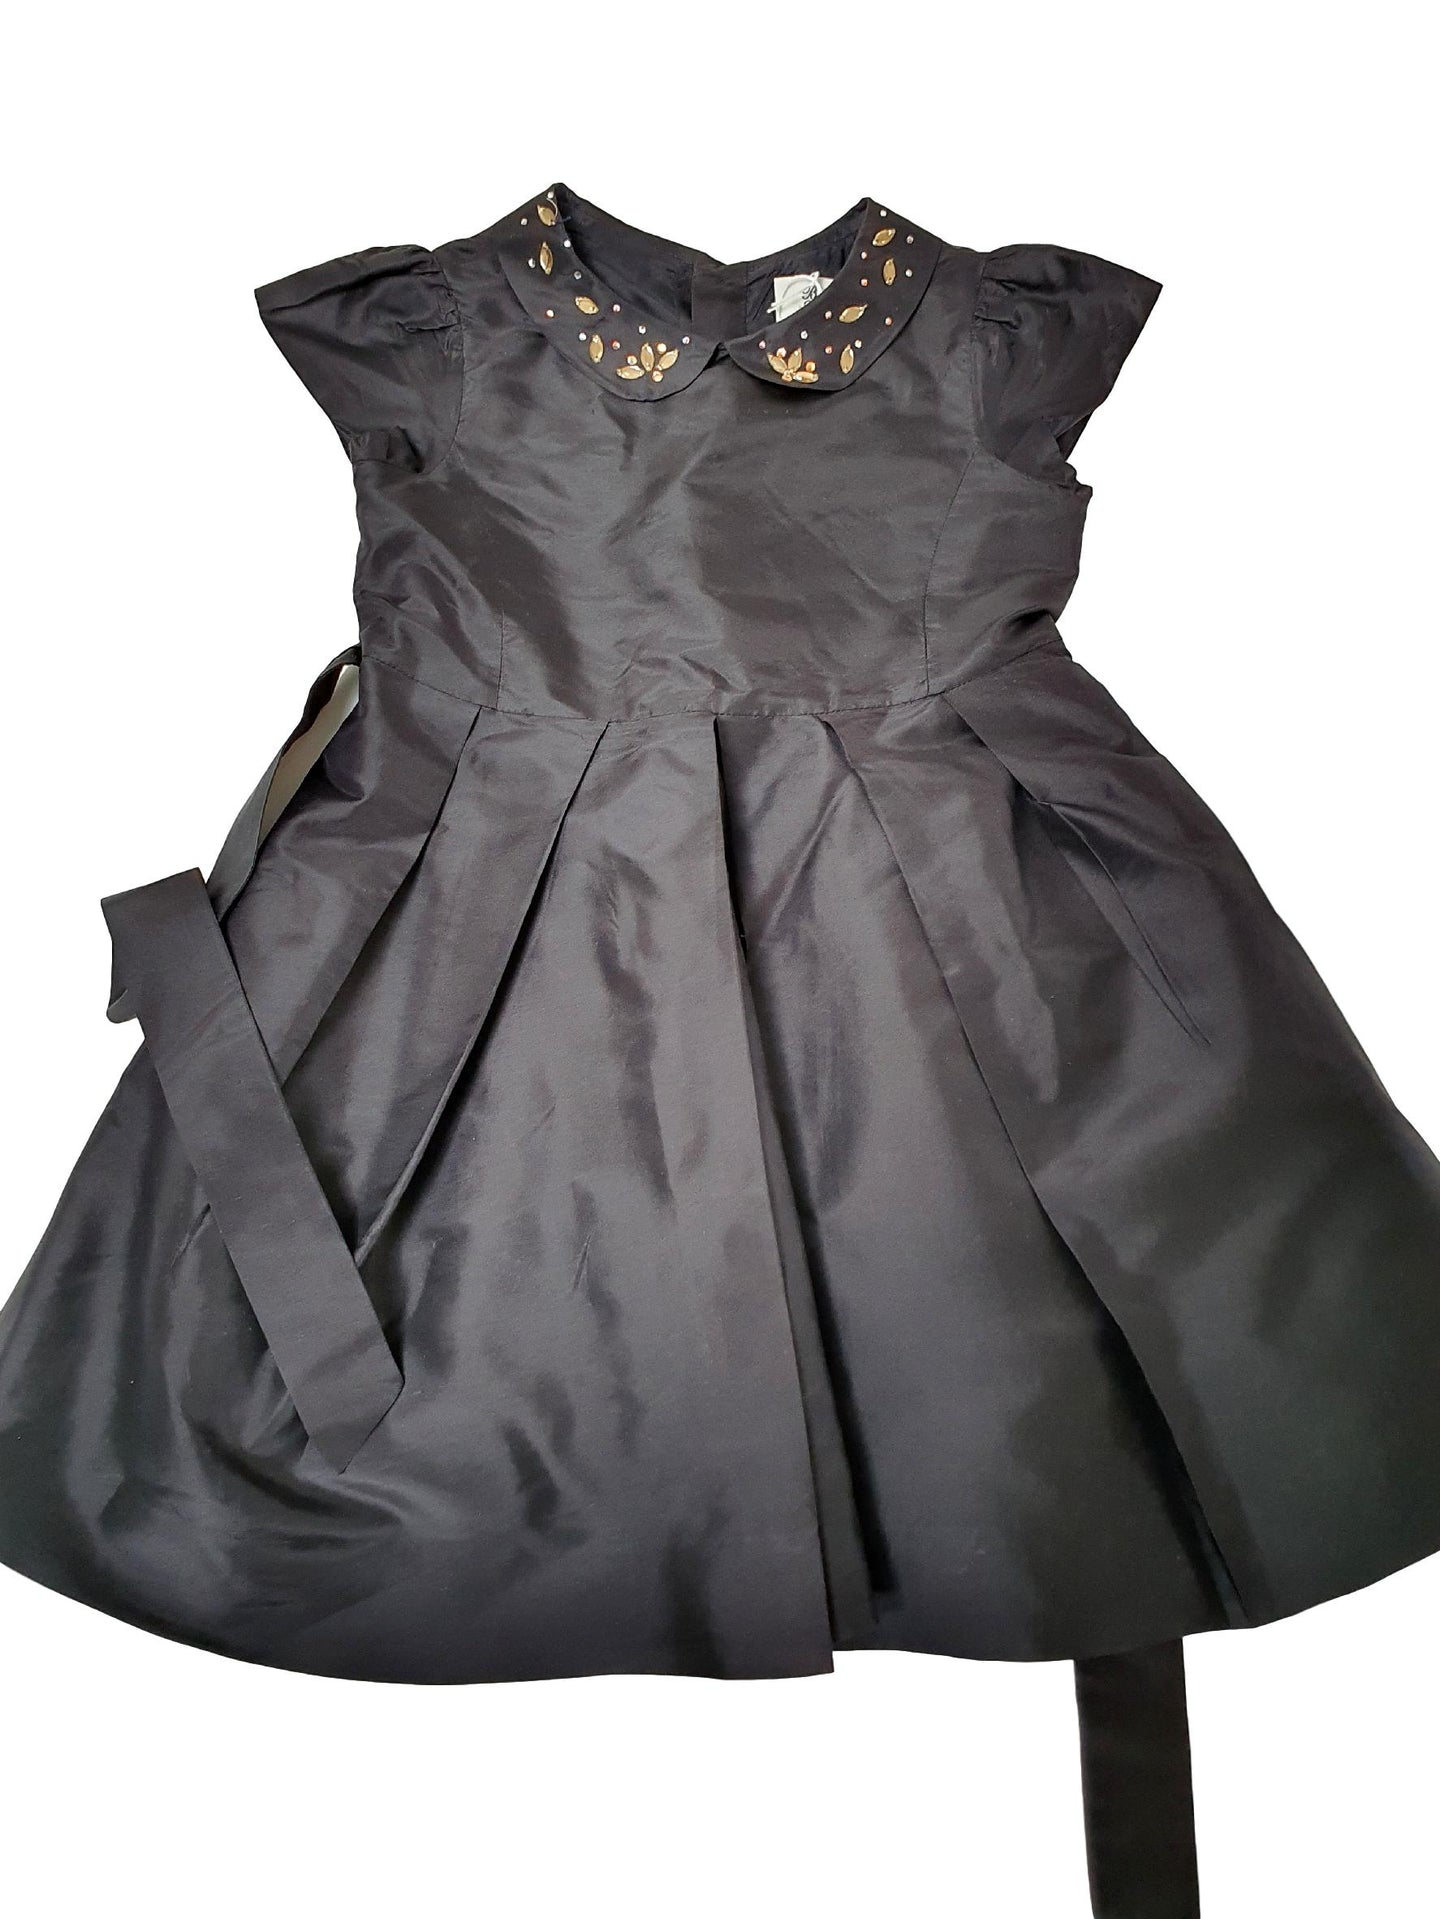 BONPOINT COUTURE dress girl 6yo